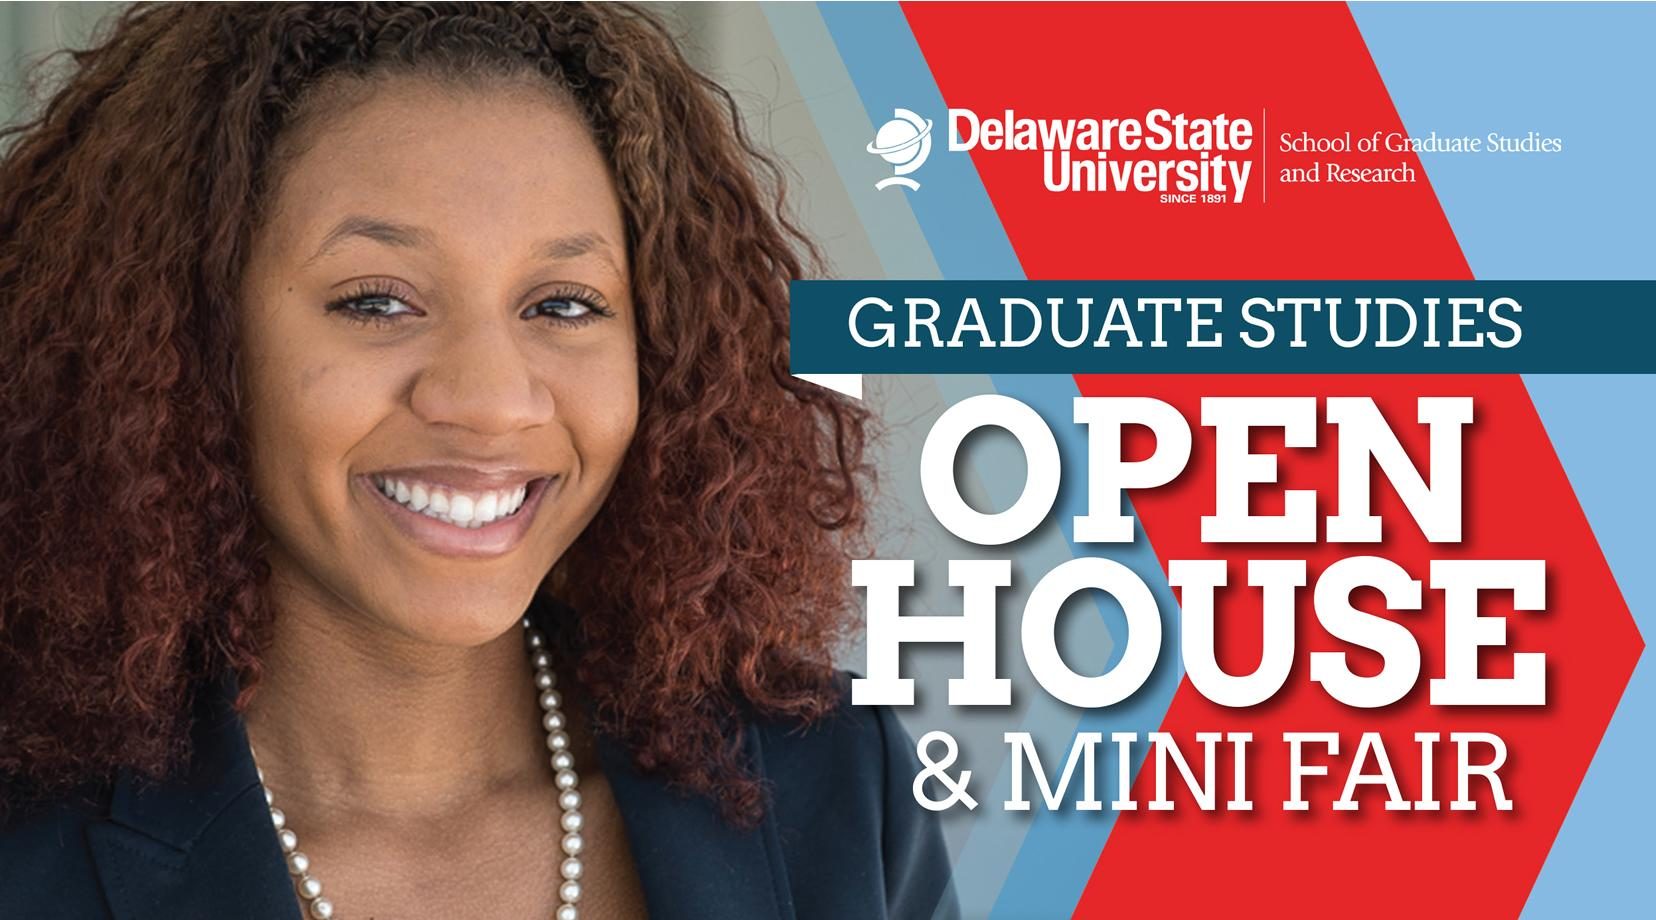 Graduate Studies Open House & Mini Fair